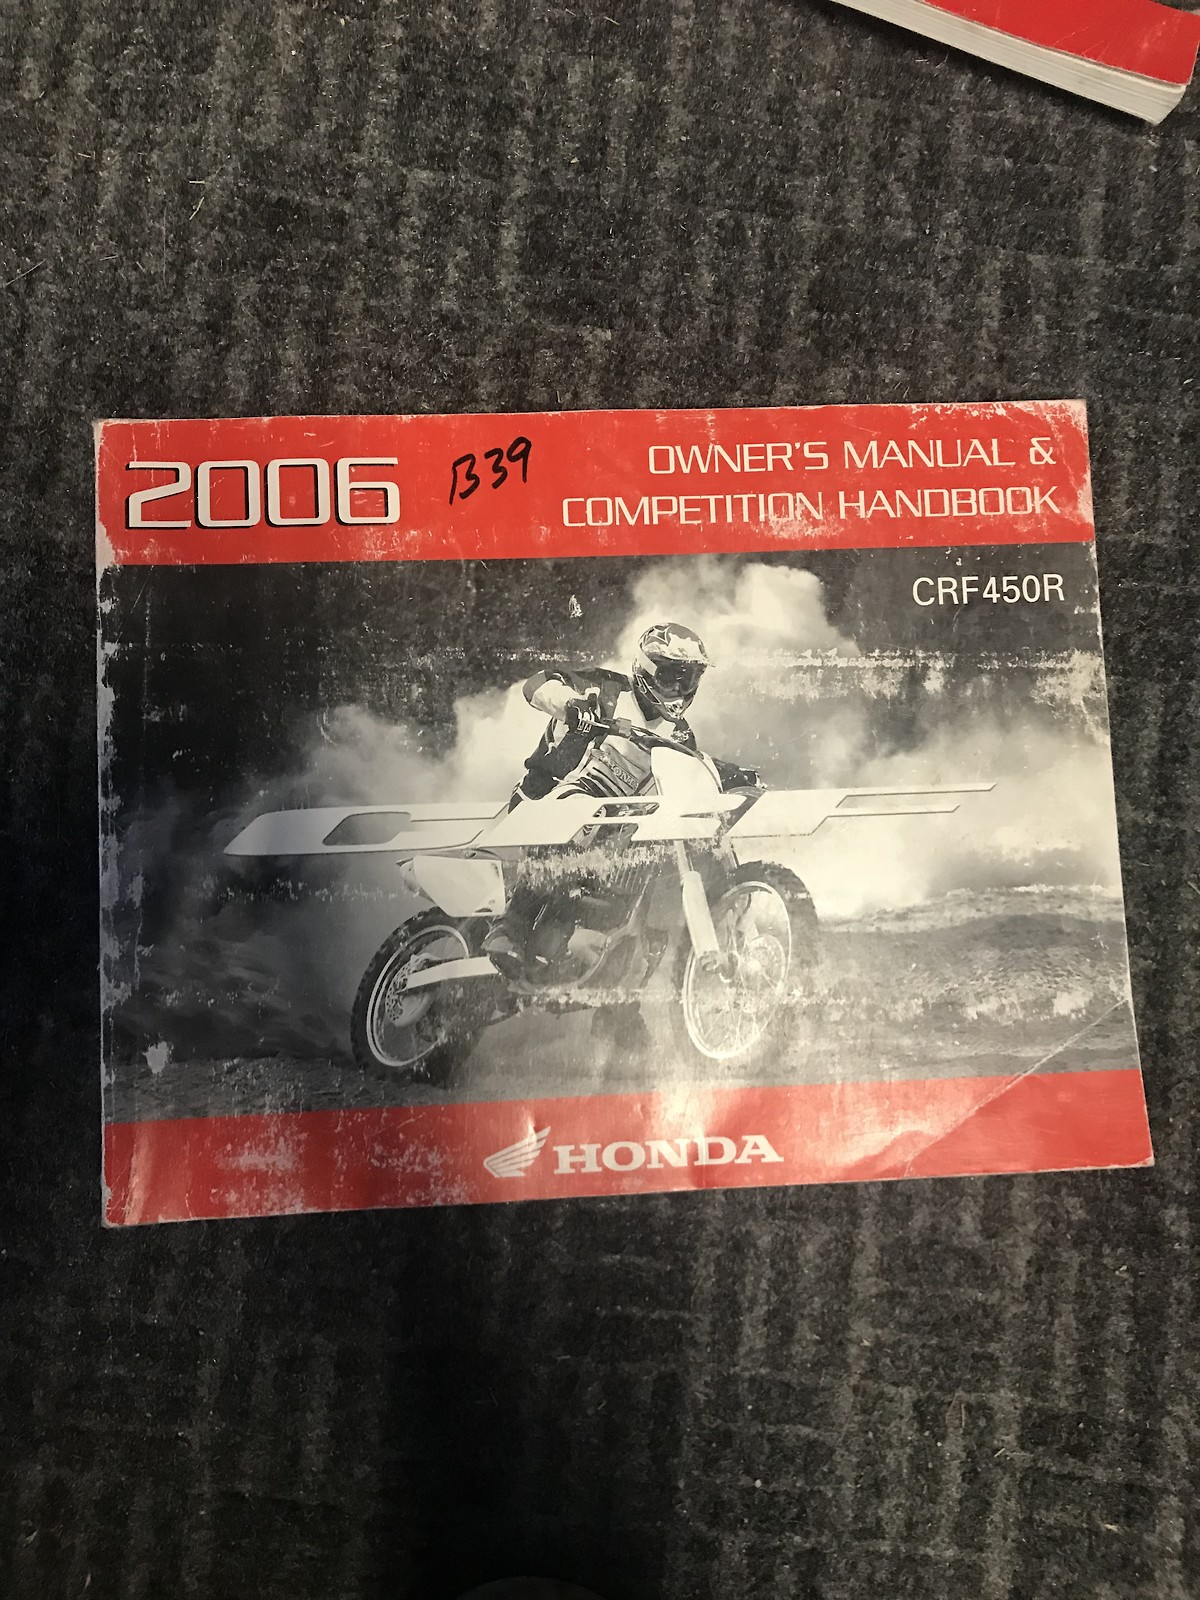 honda sservice manuals for sale 25 each obo